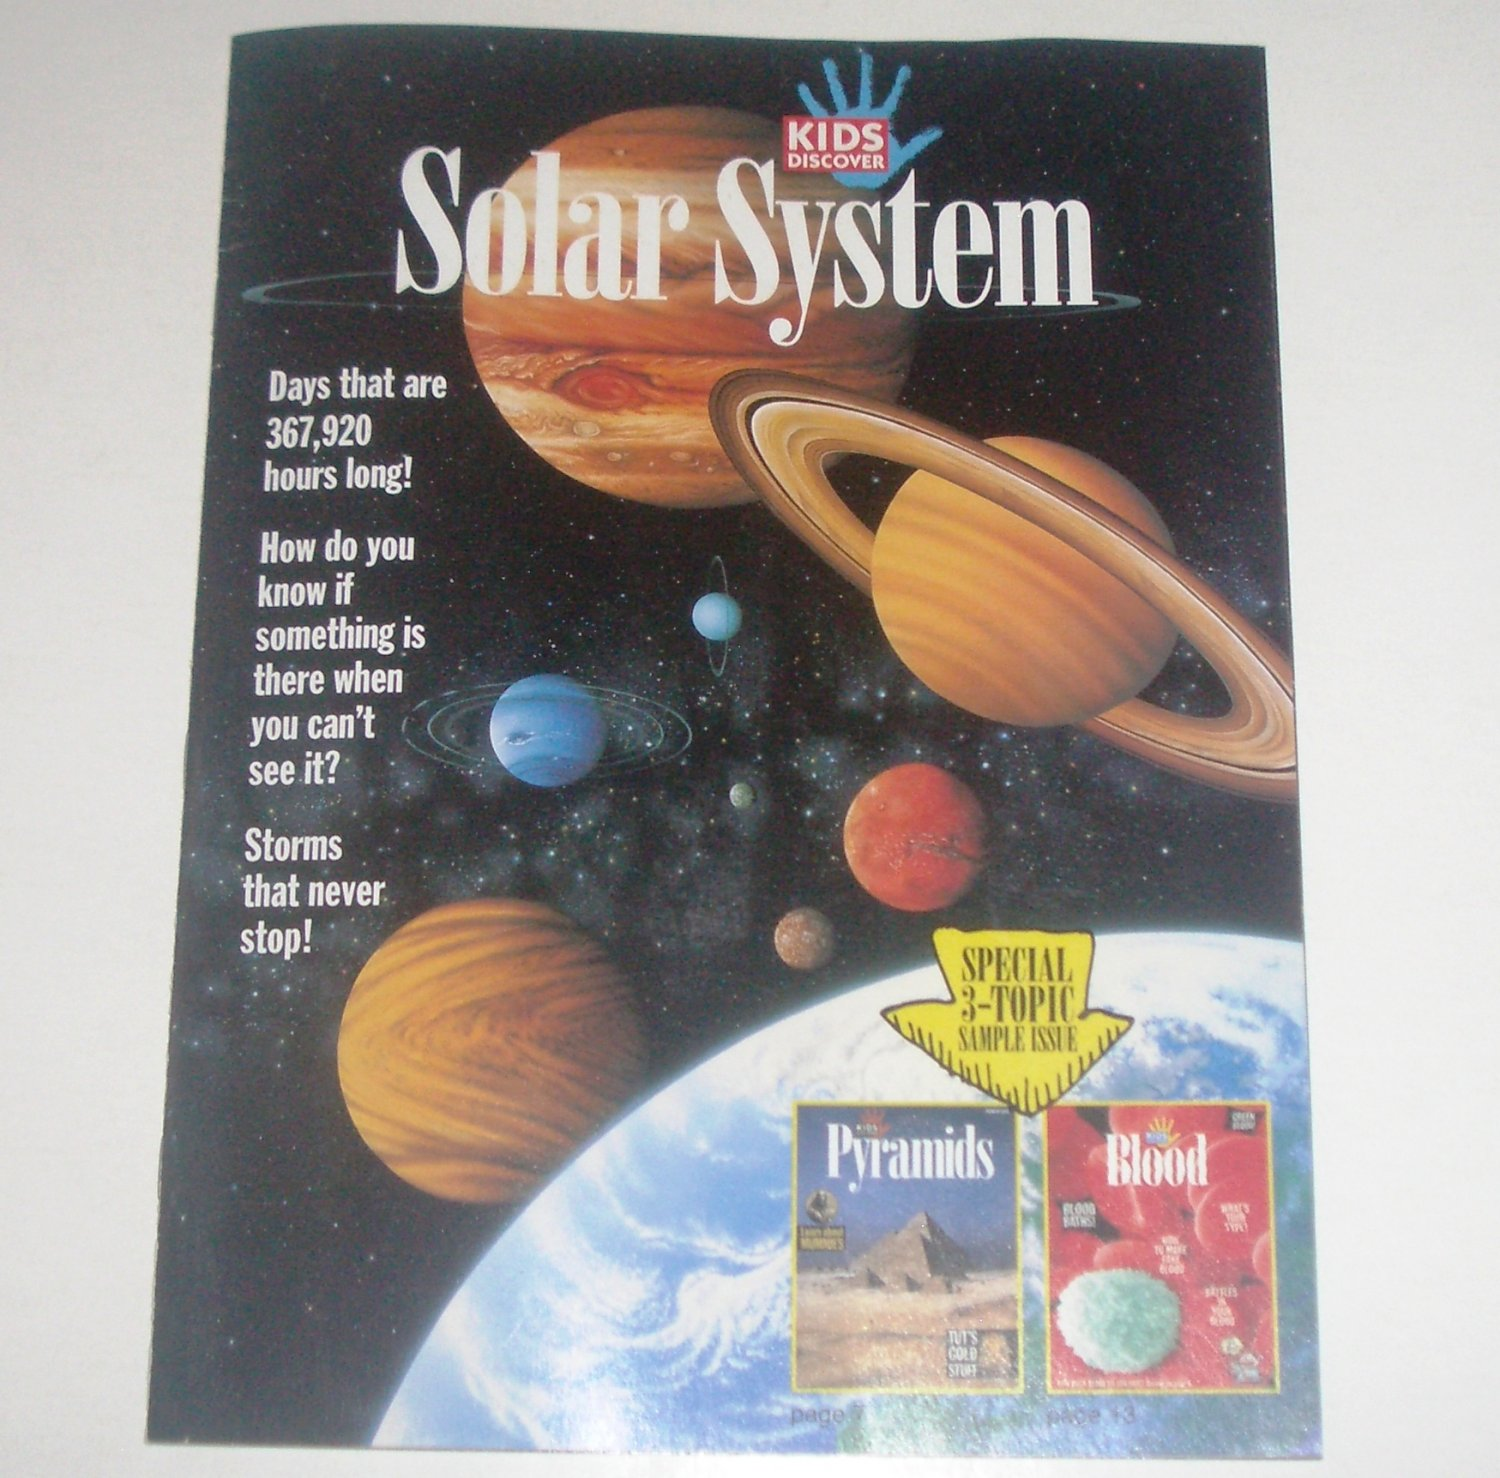 Kids Discover Solar System Special 3-Topic Sample Issue: Pyramids, Blood